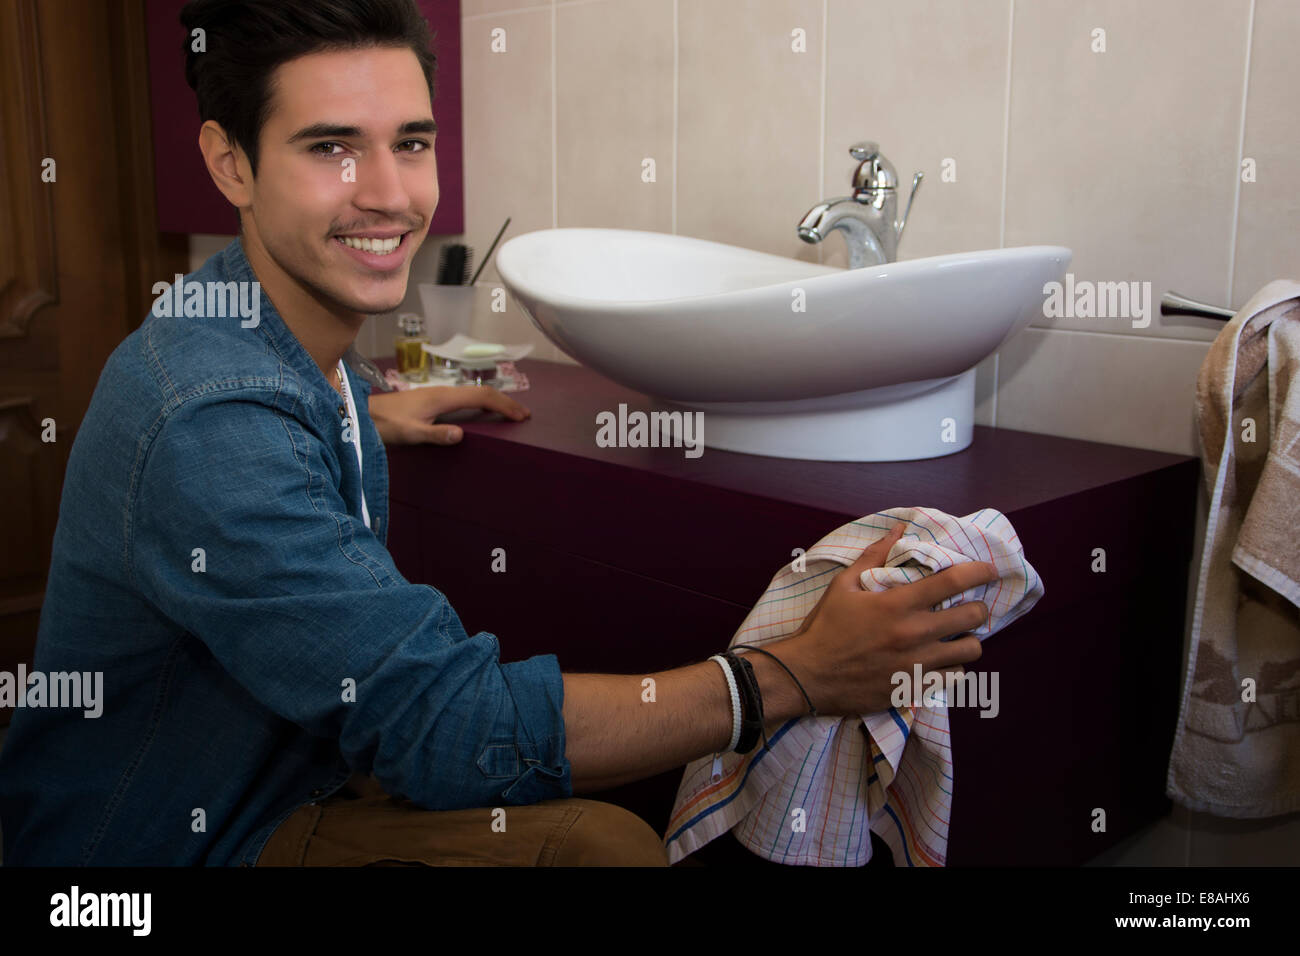 Cheerful young man kneeling down with a cloth in his hand cleaning the bathroom interior wiping the ceramic hand - Stock Image